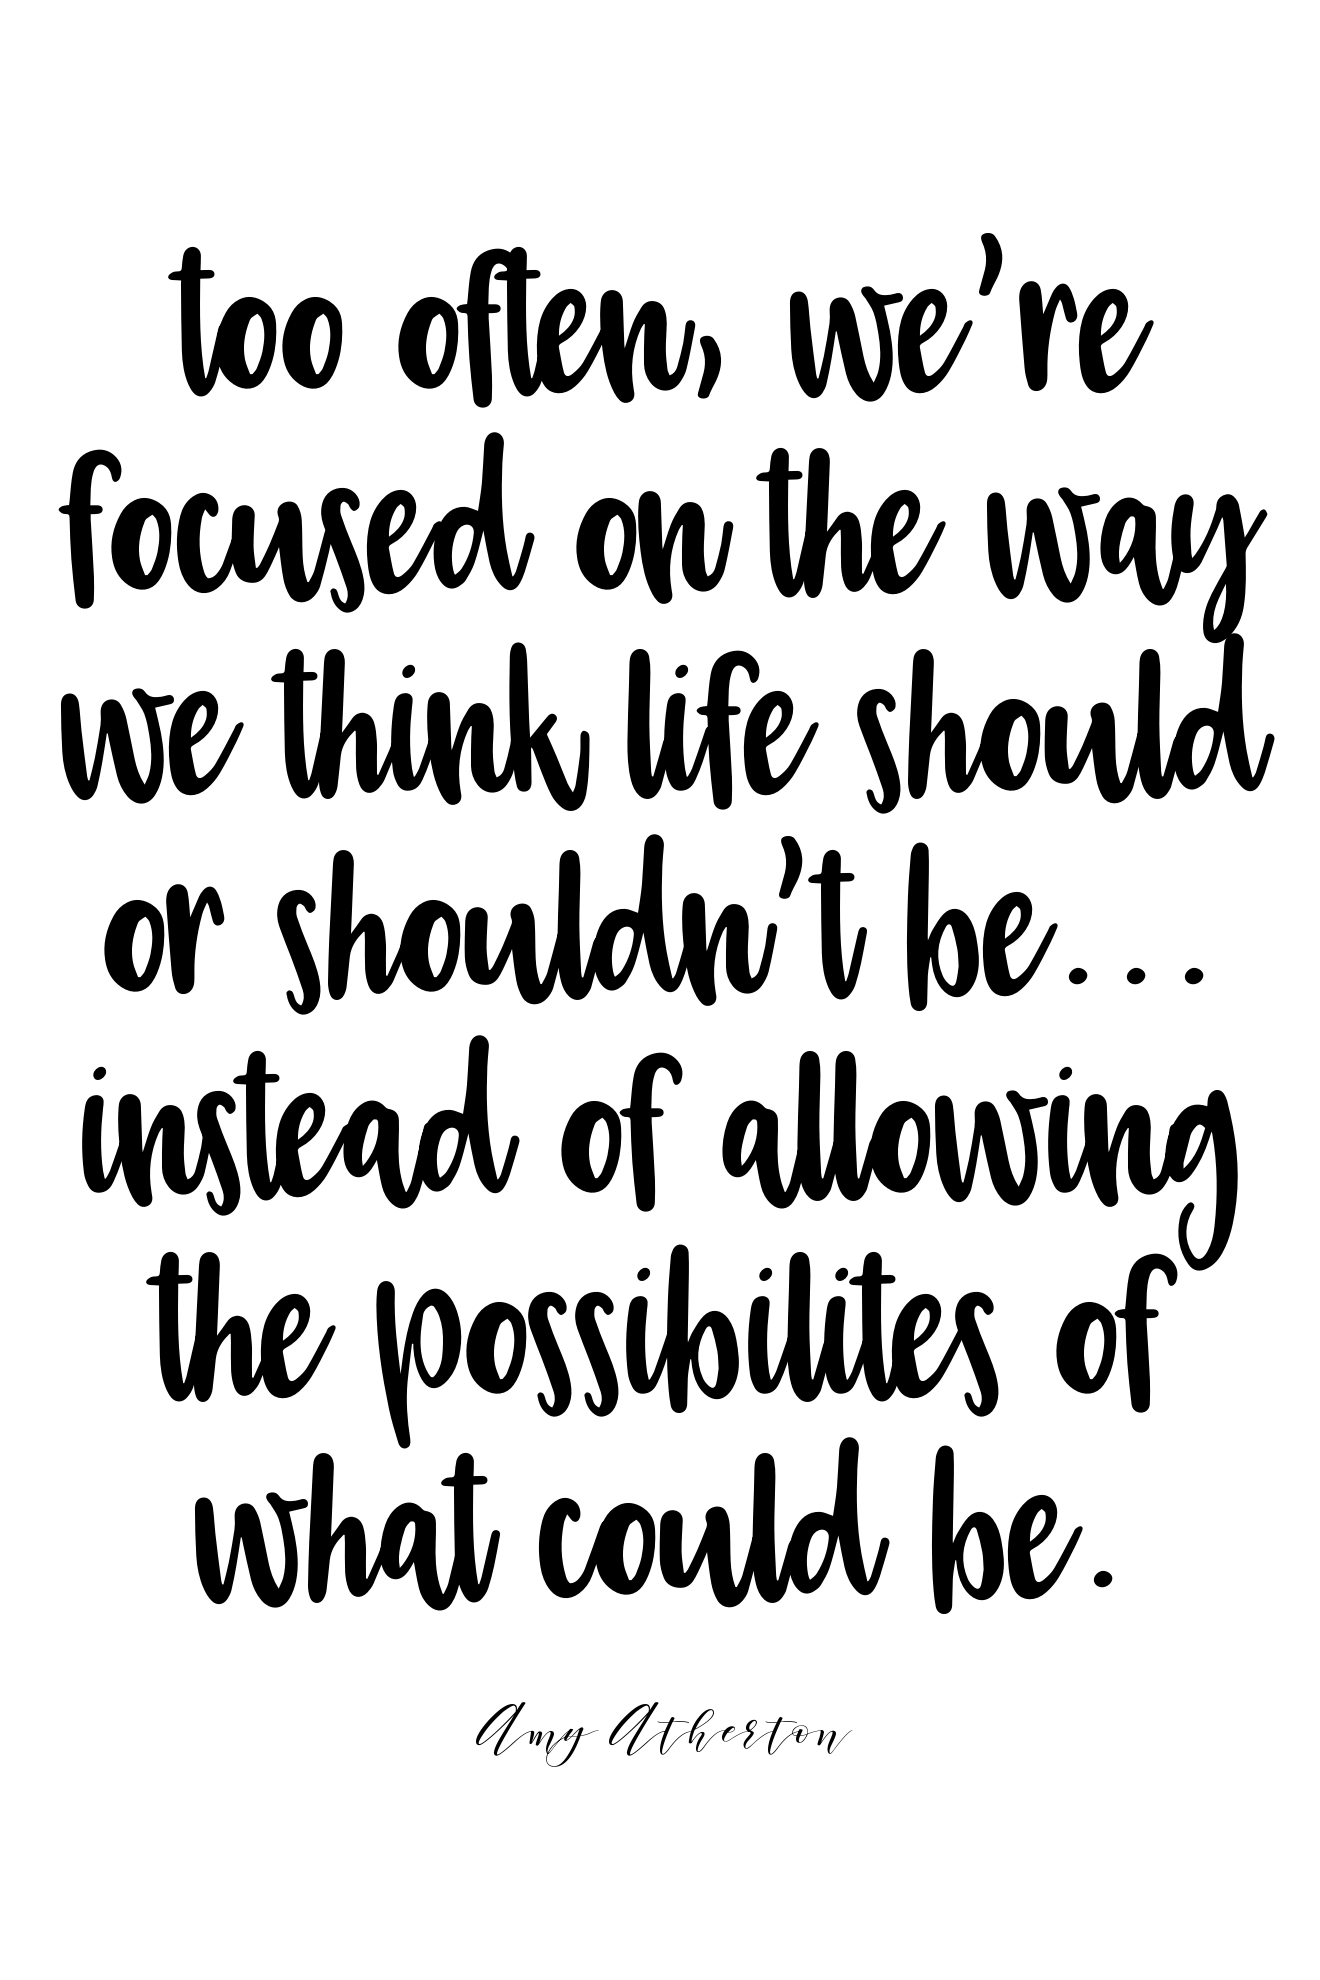 allow the possibilities of what could be. @amybakeshealthy